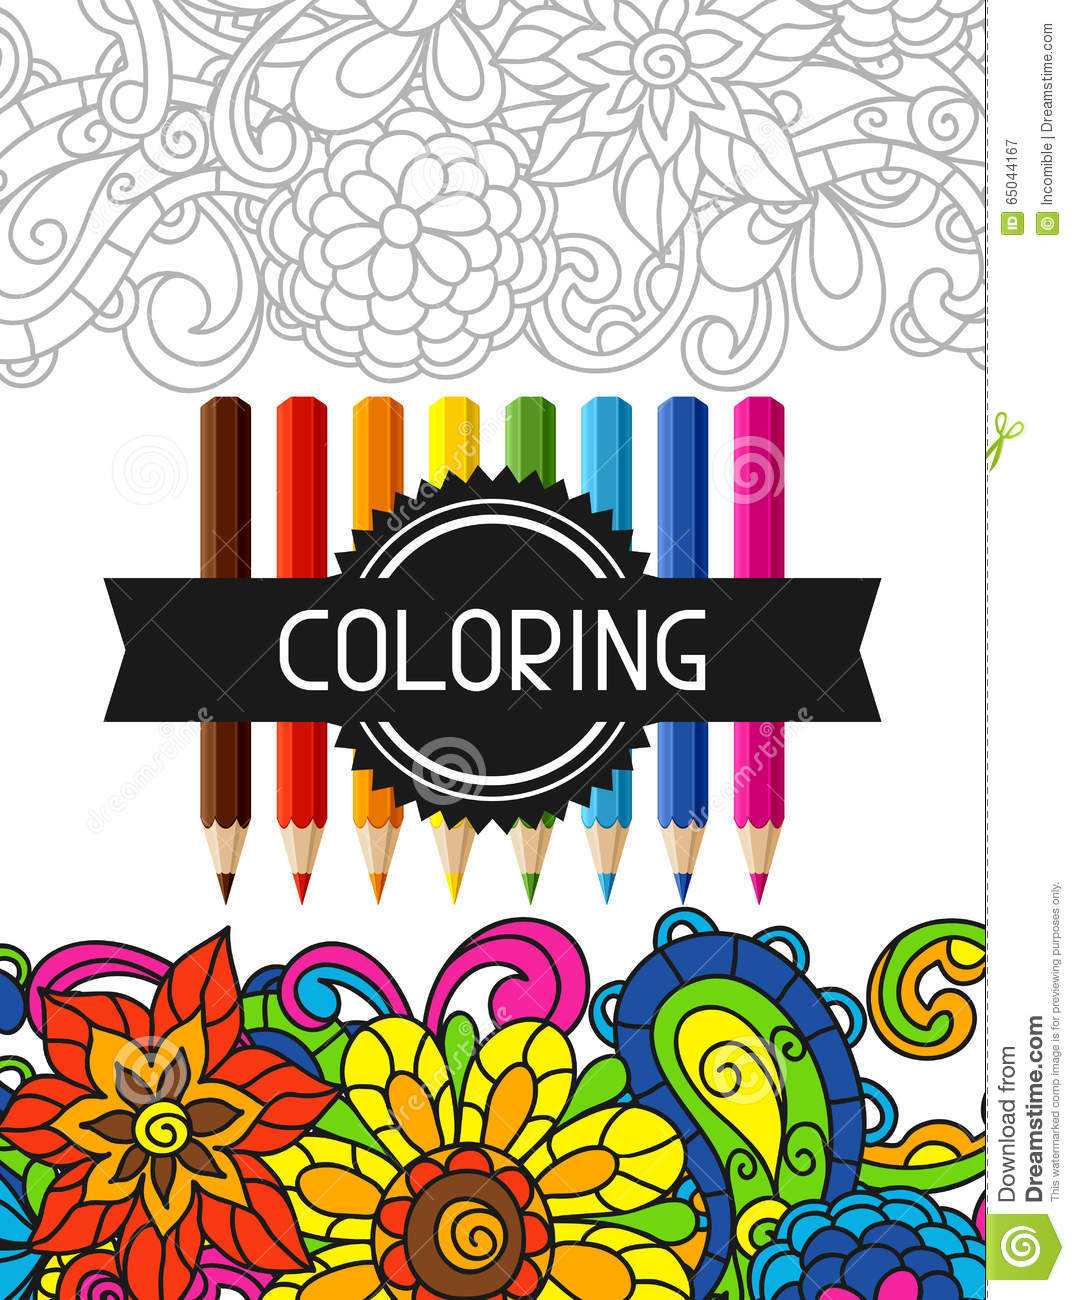 Royalty Free Vector Download Adult Coloring Book Design For Cover